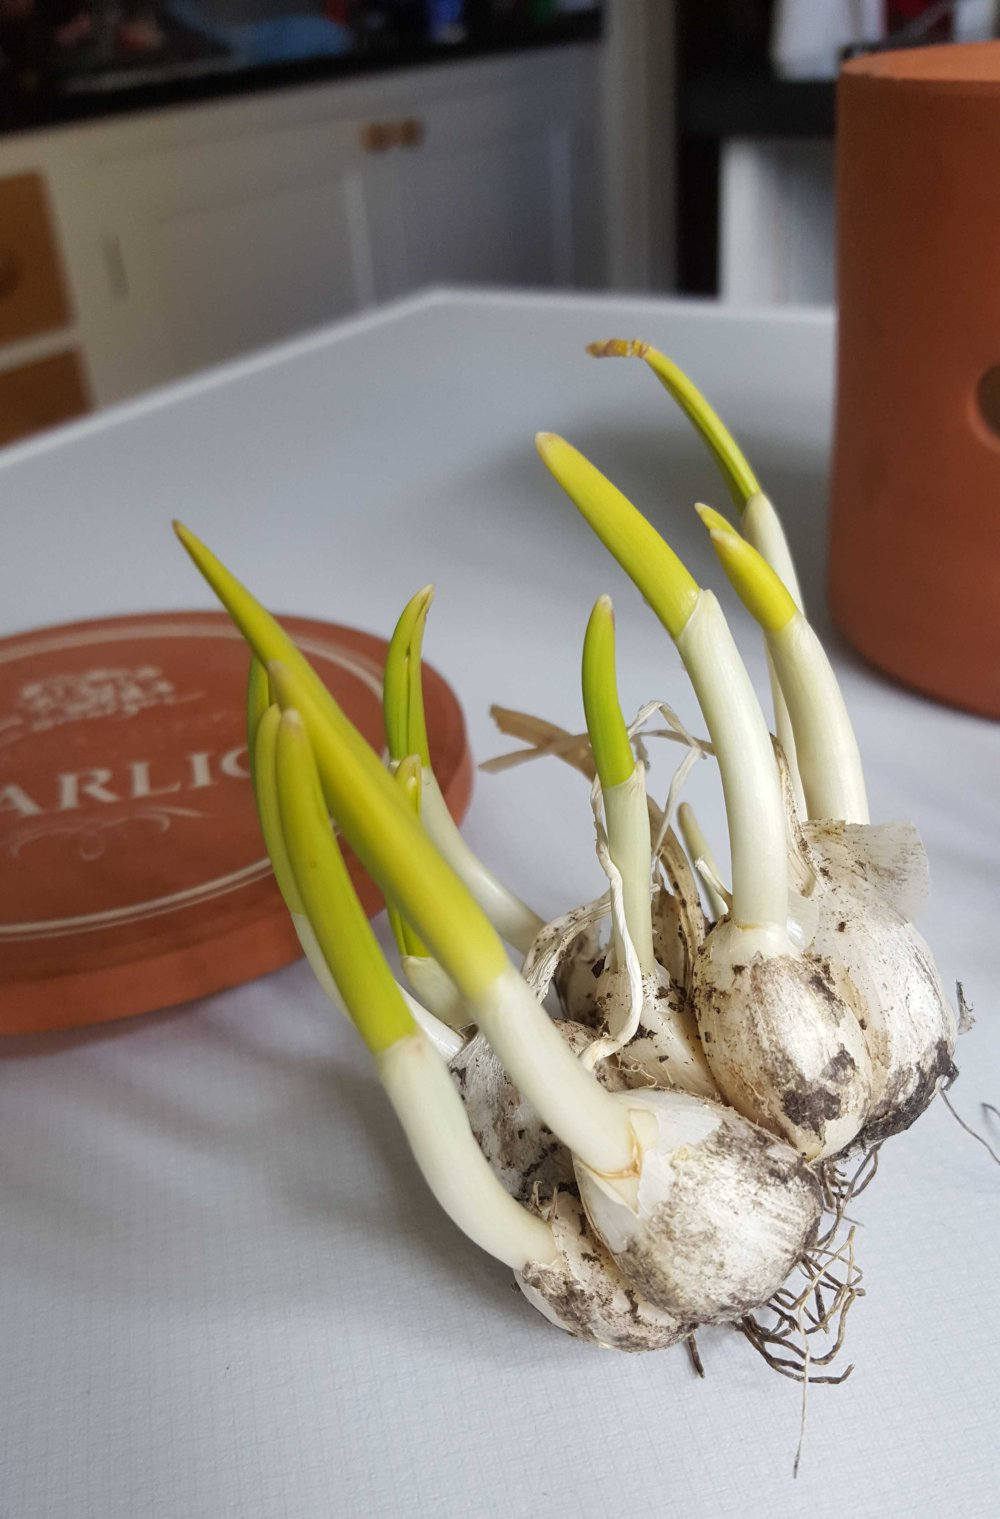 Garlic bolted